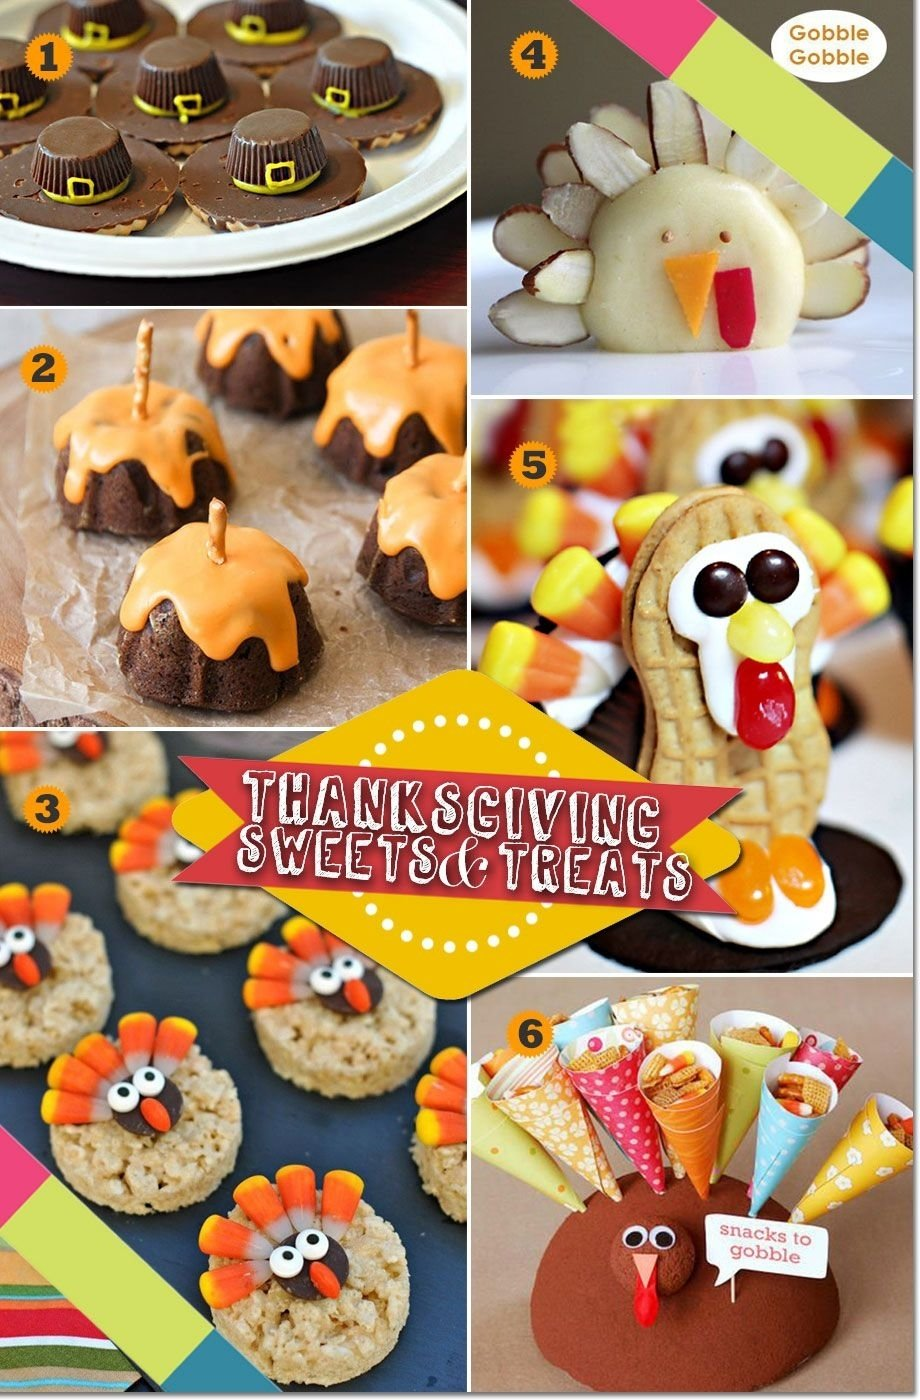 10 Nice Thanksgiving Party Ideas For Kids kid friendly thanksgiving party ideas activities crafts treats 1 2020